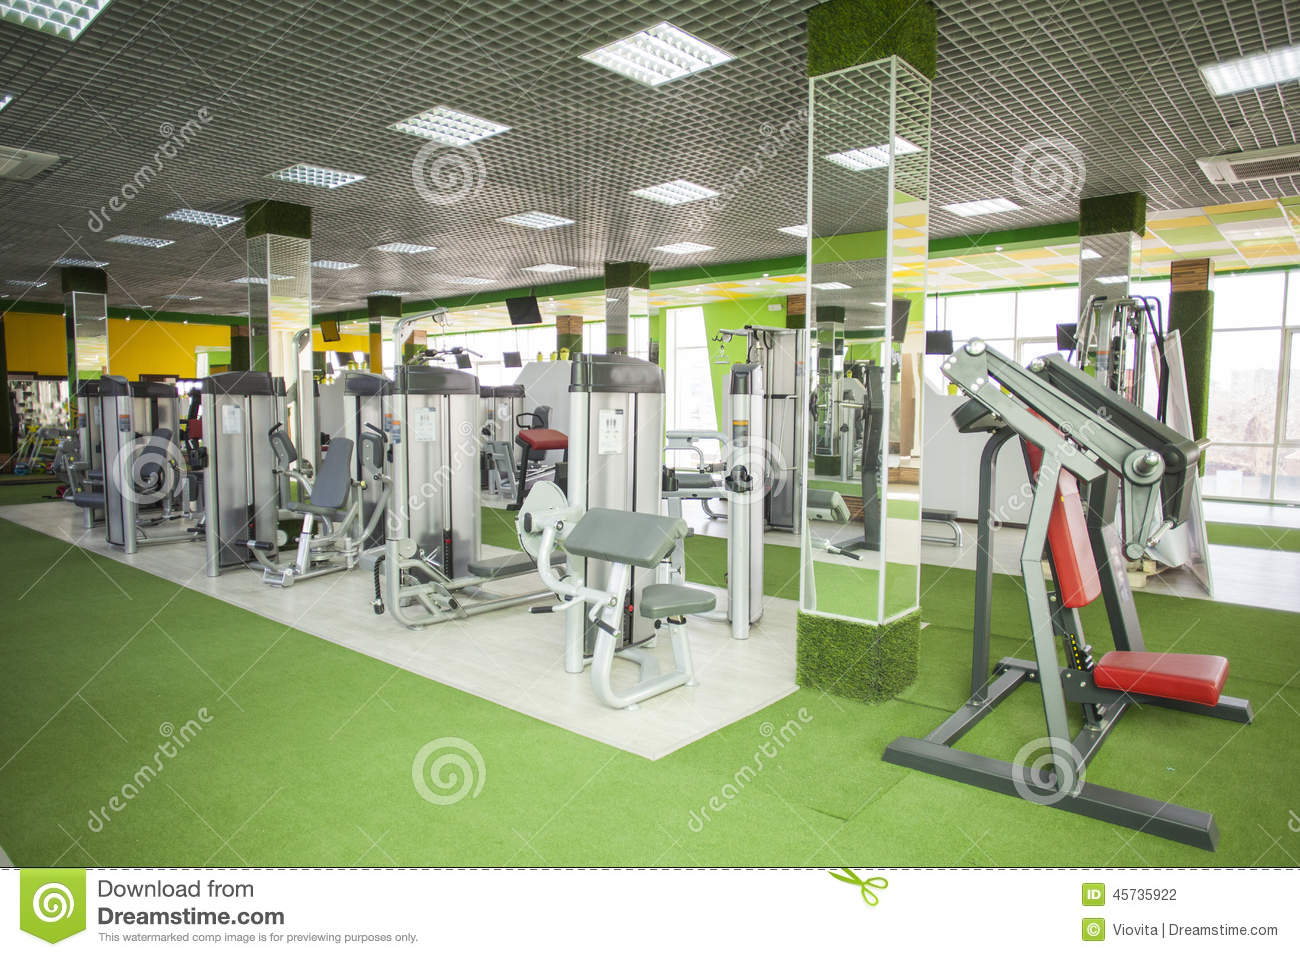 Gym equipment room stock photo image